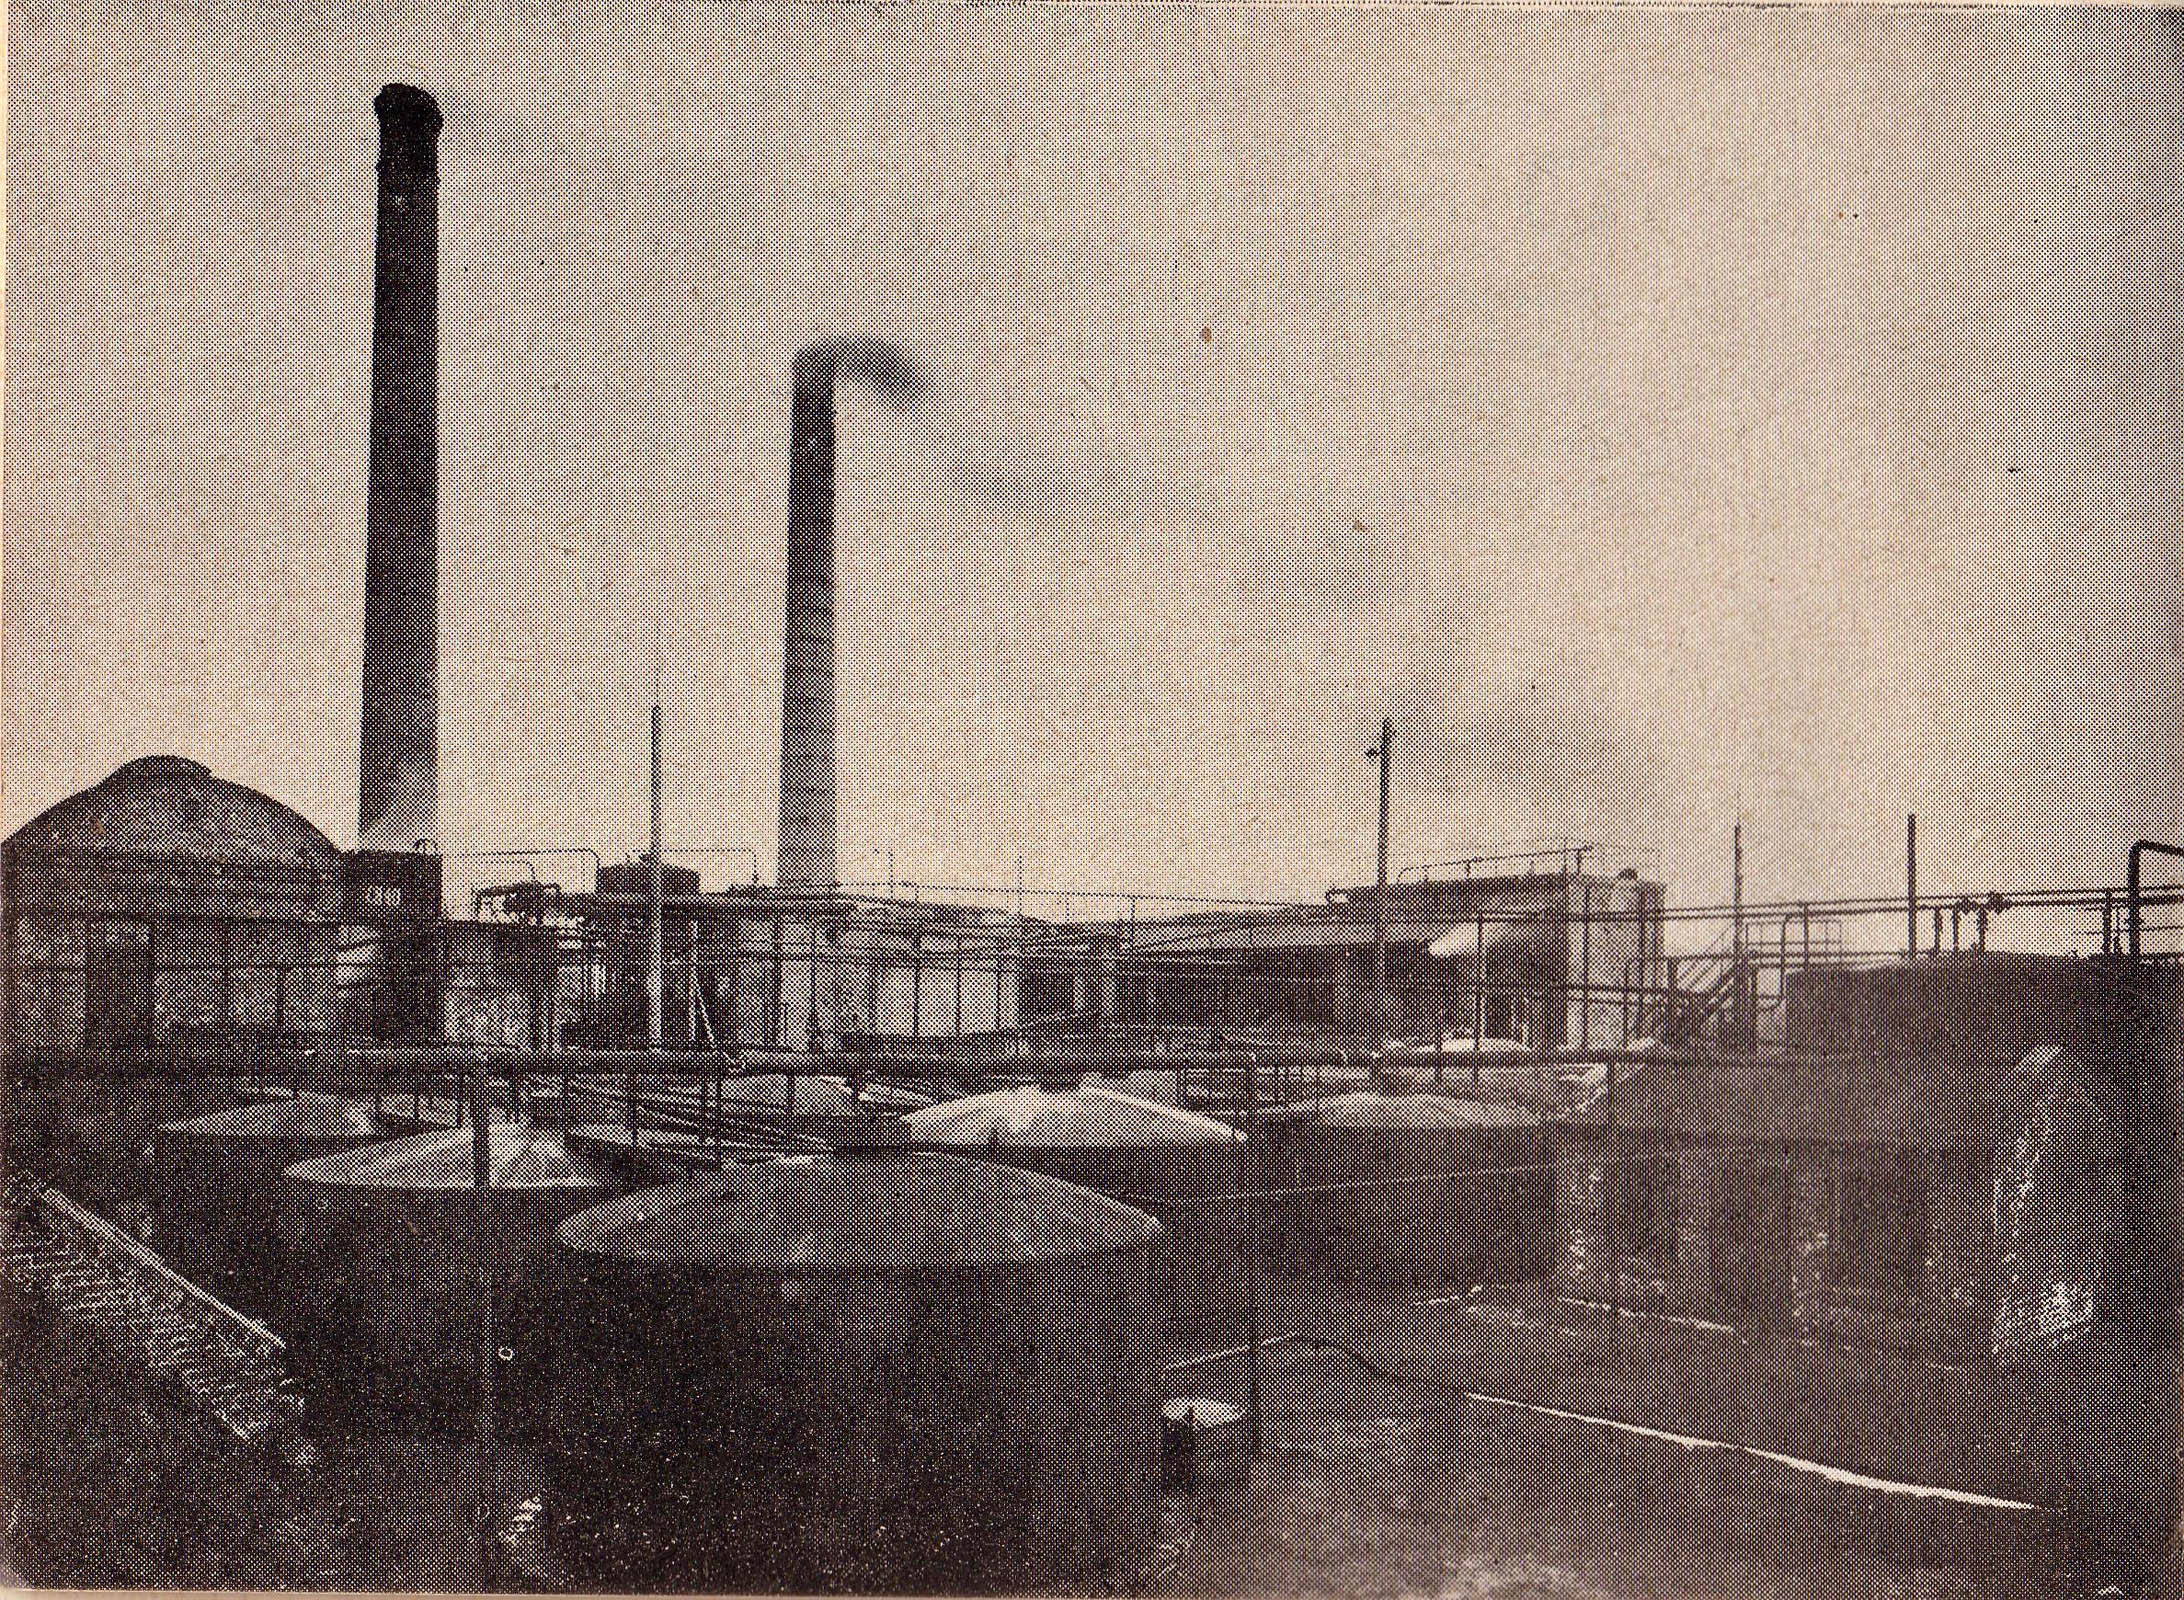 Photographs of Trzebinia refinery buildings 1964 1